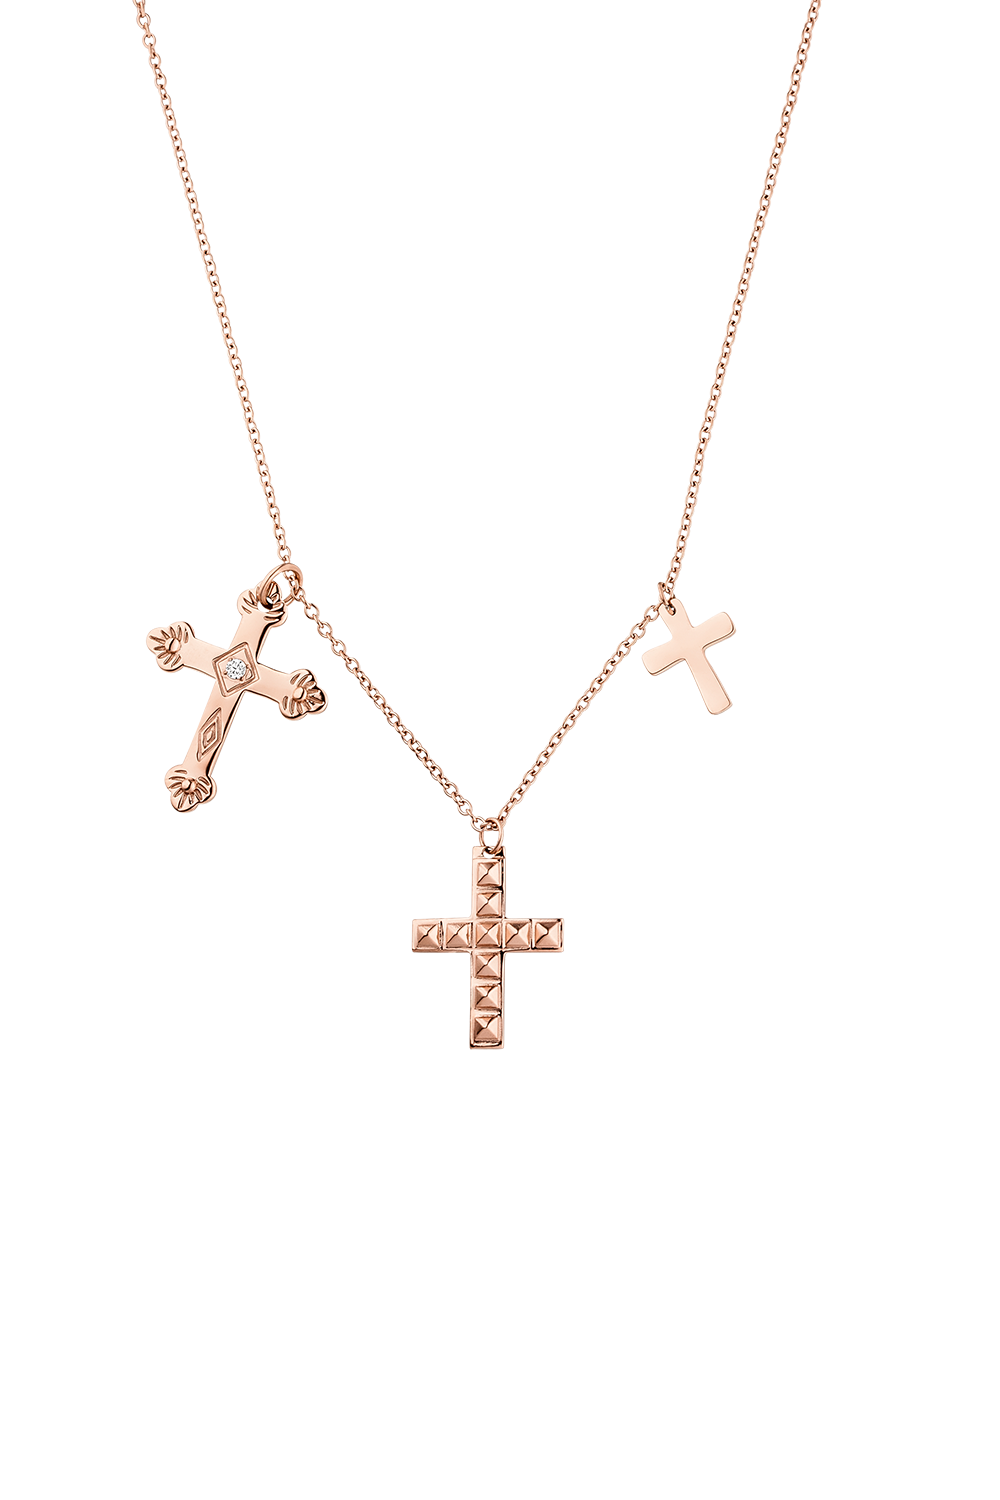 SAINT VALENTINE NECKLACE ROSÉGOLD